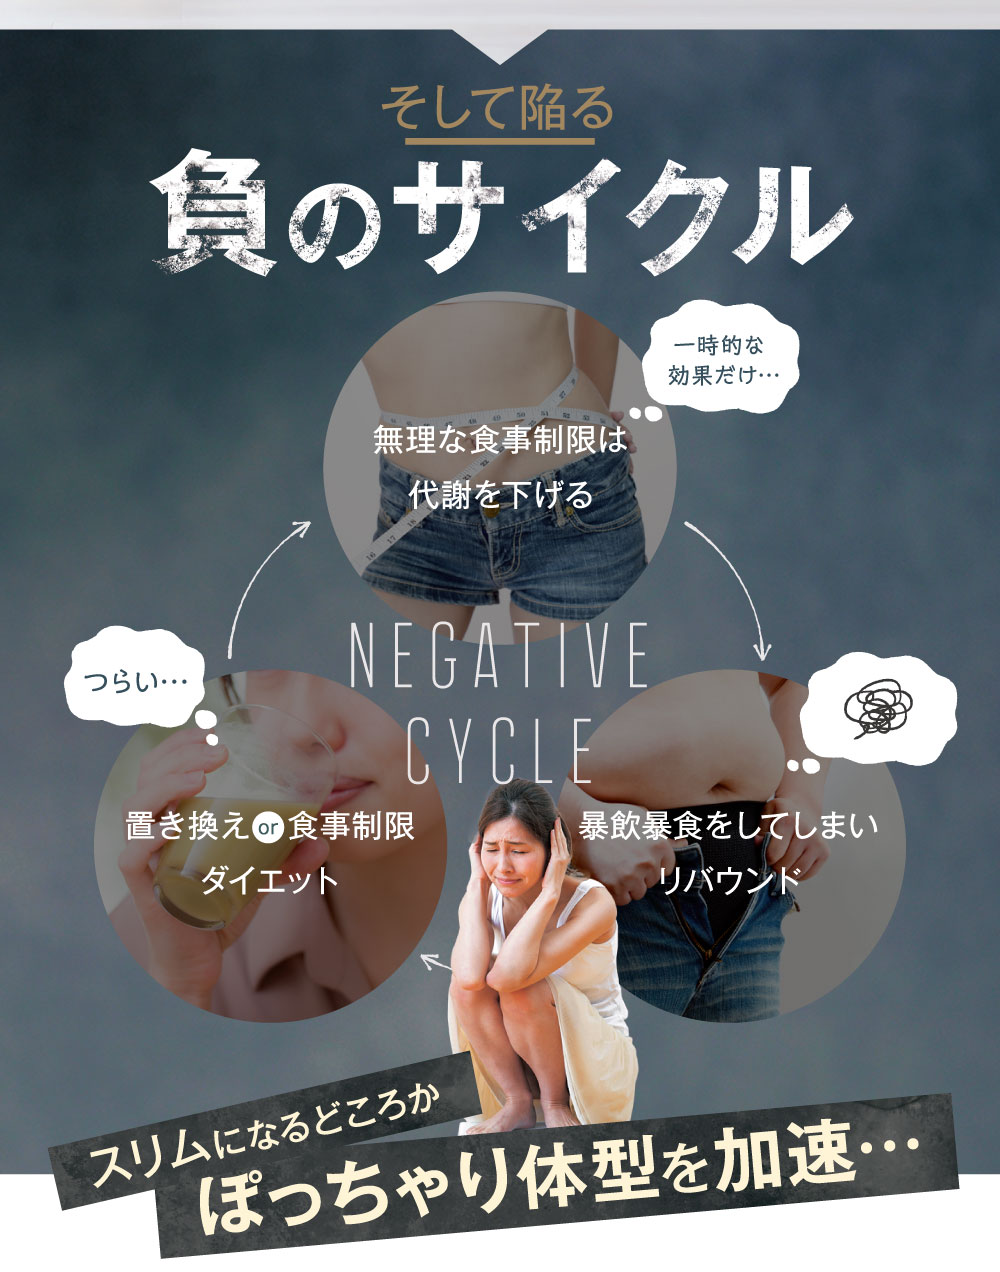 neGativecycle